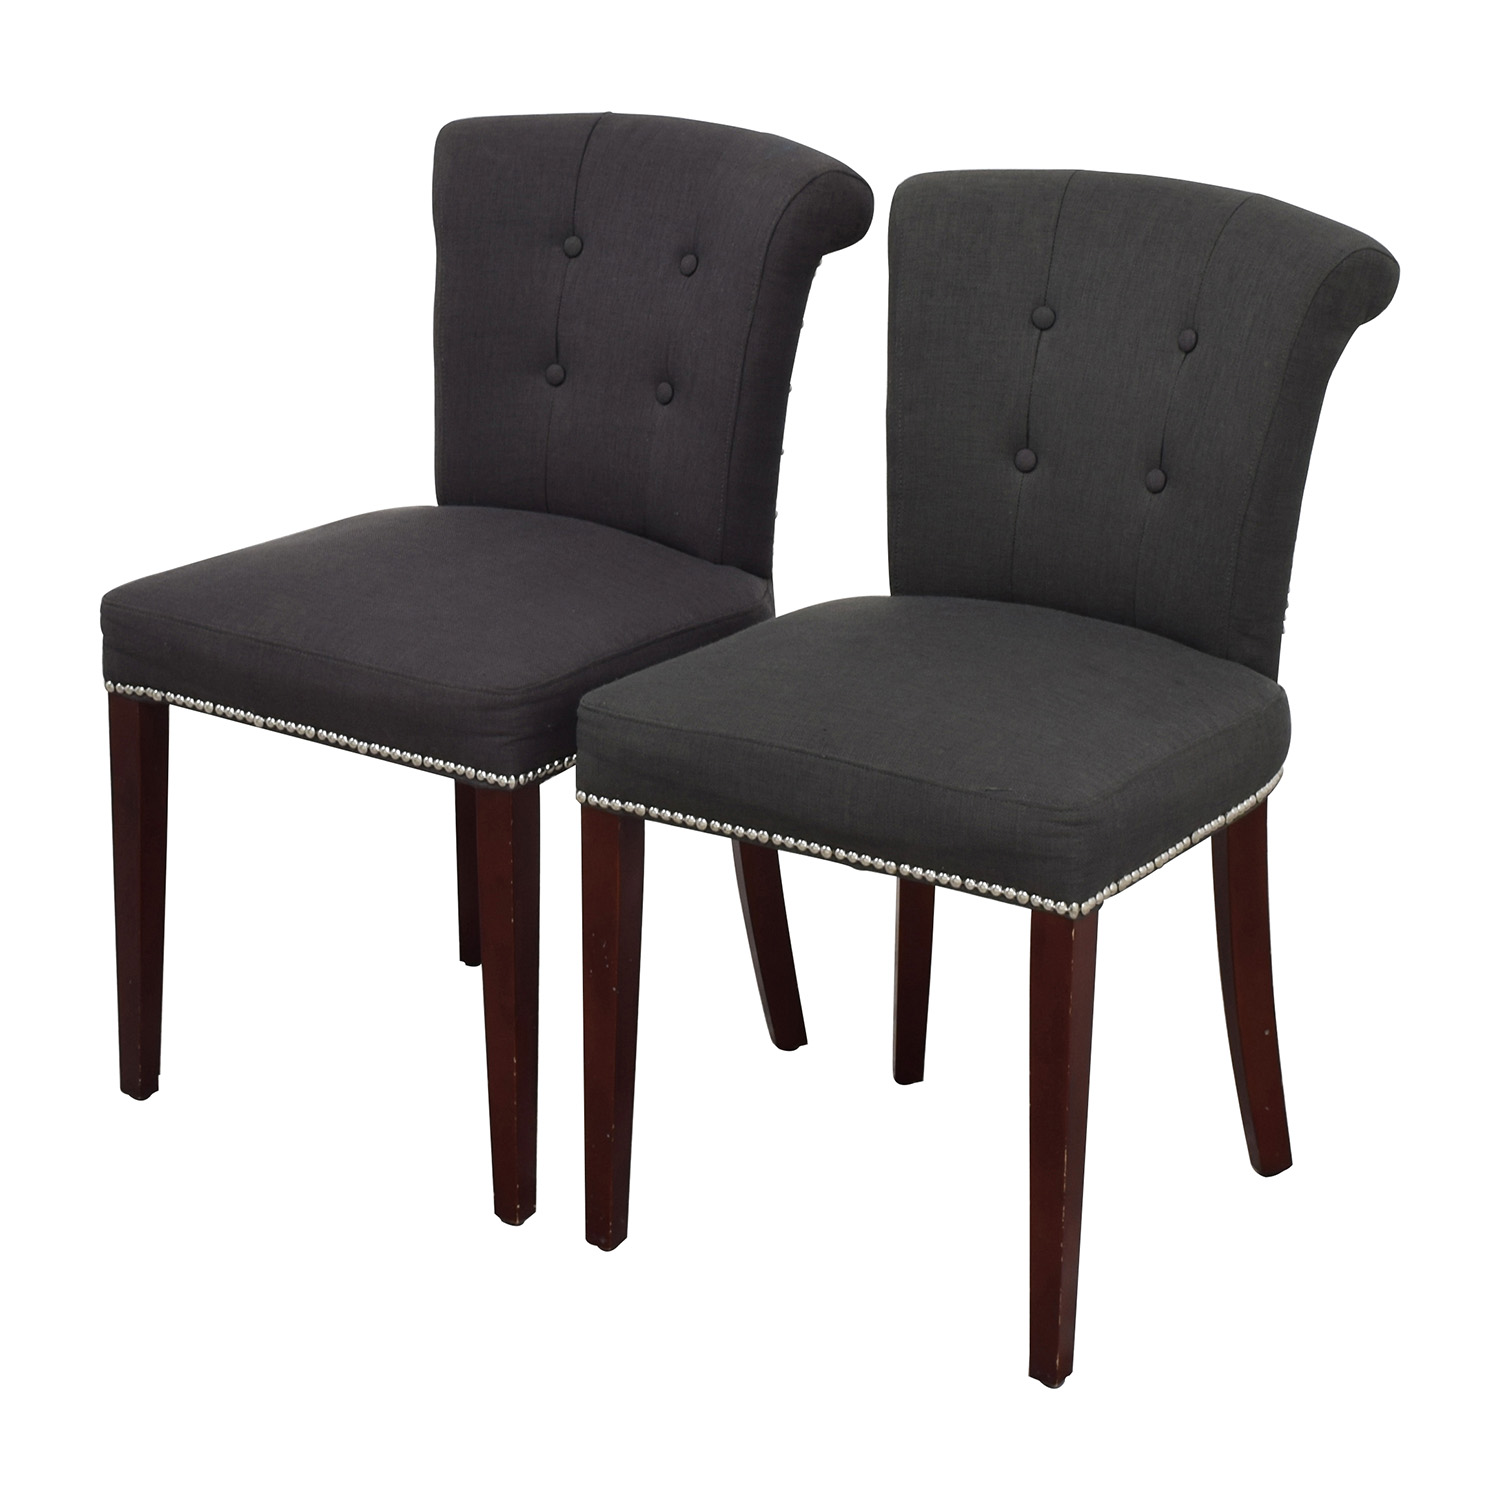 safavieh sinclair ring side chair high dining room chairs 90 off en vogue charcoal